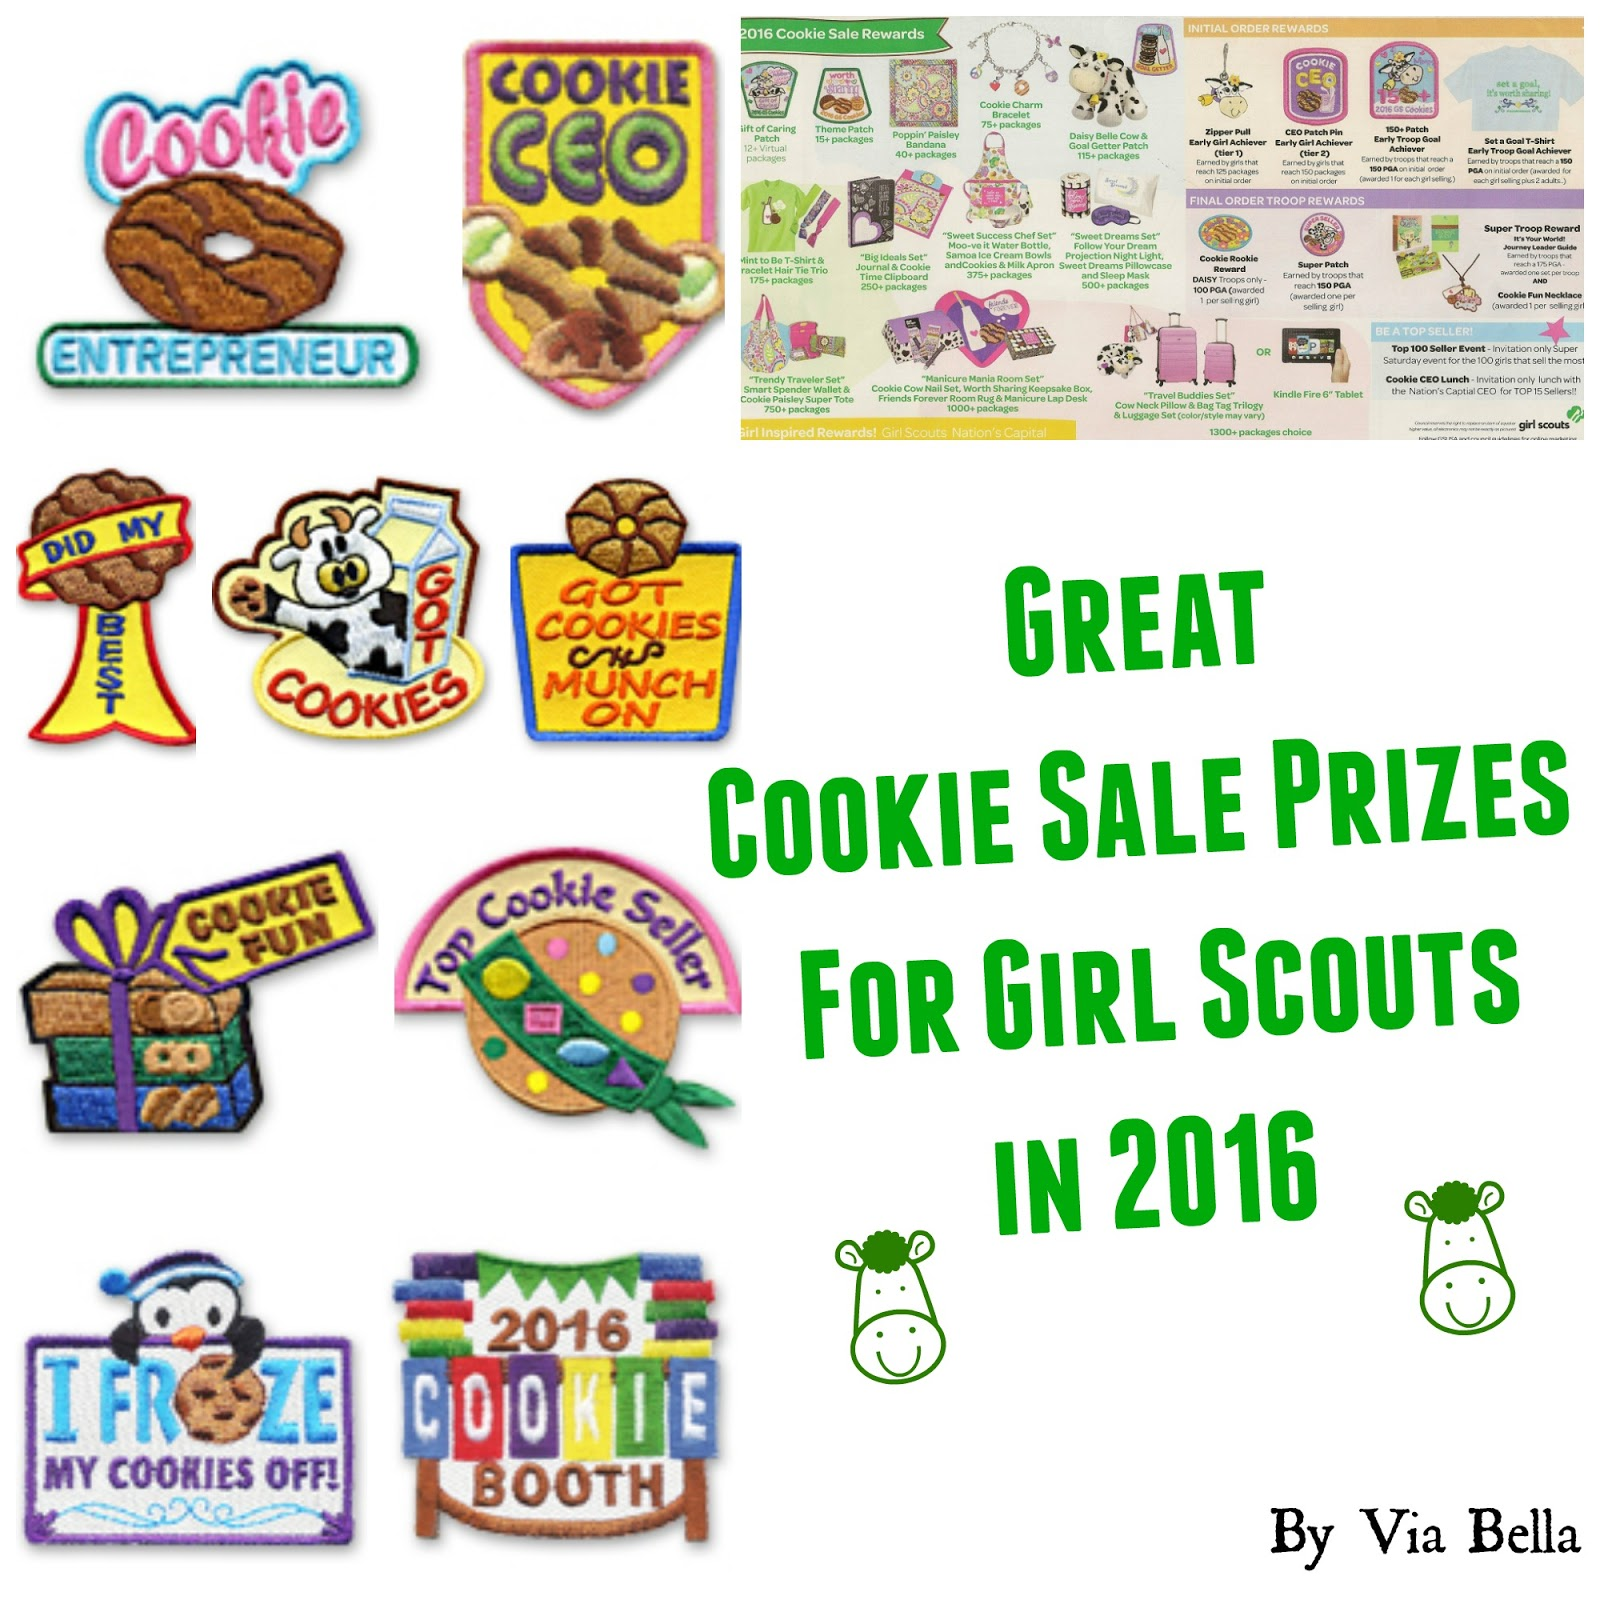 Via Bella: Great Cookie Sale Prizes For Girl Scouts in 2016